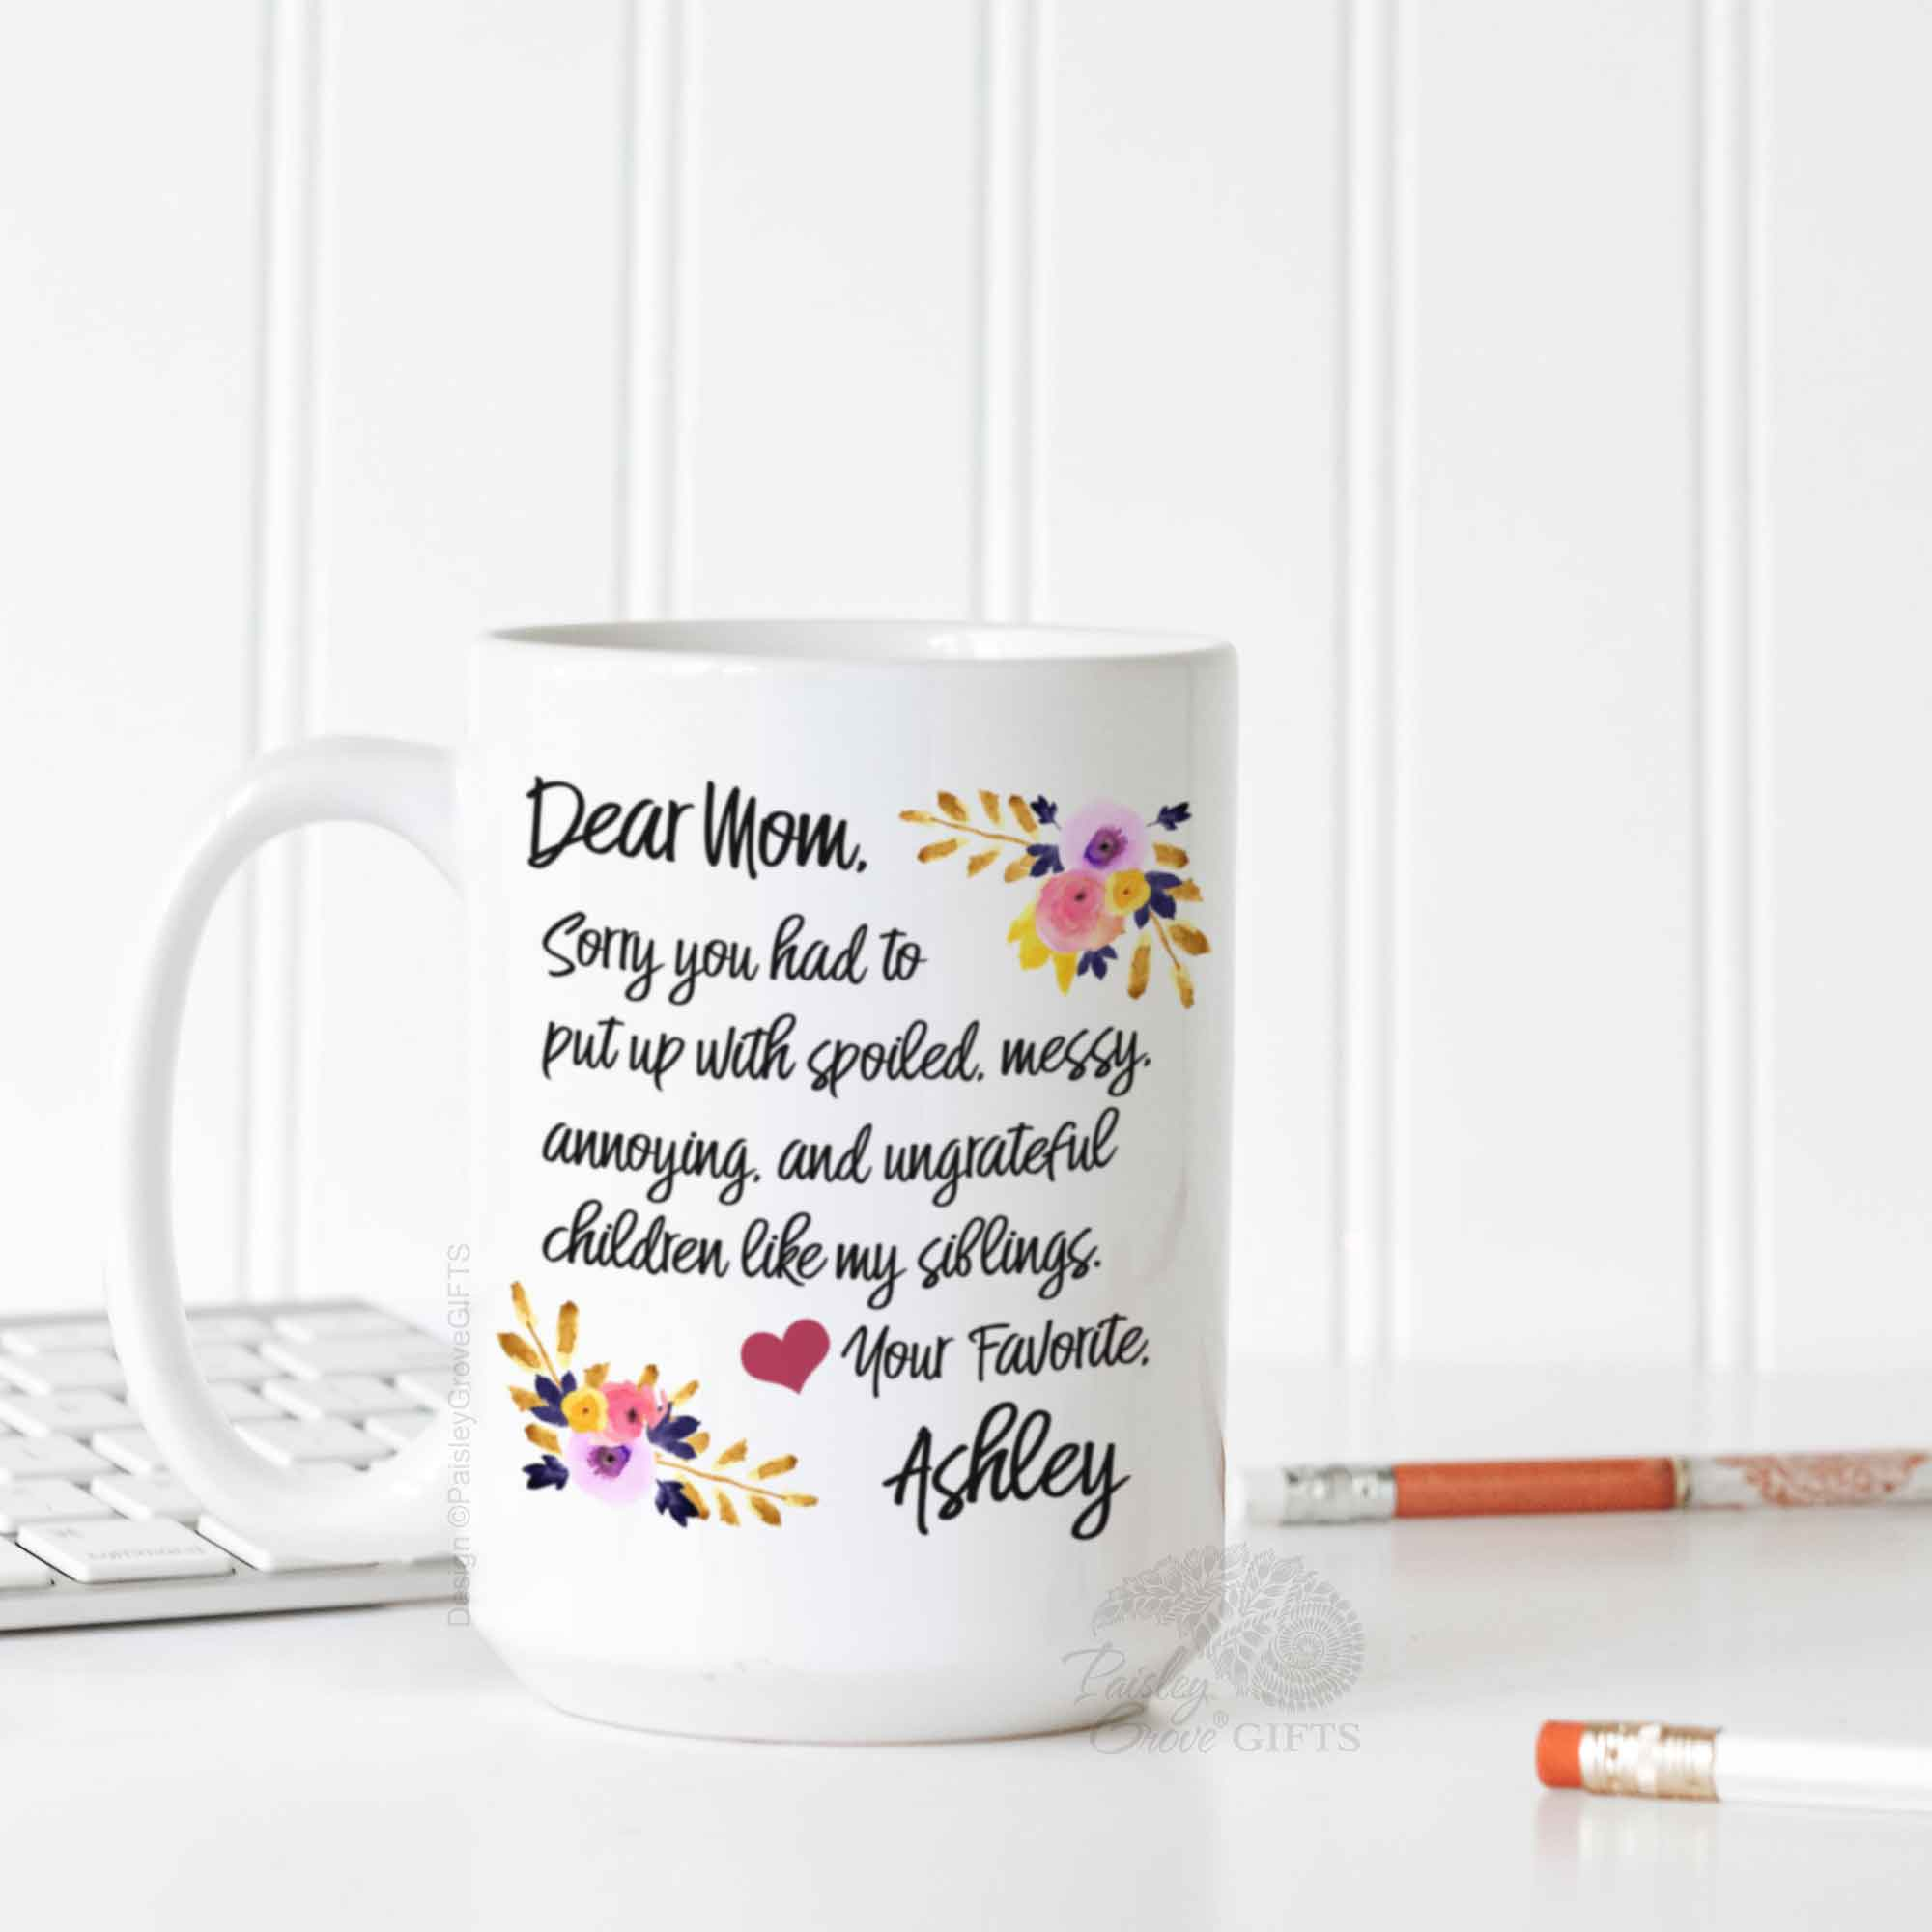 CopyrightPaisleyGroveGIFTS P011a Funny Christmas Gift for Mom from Daughter